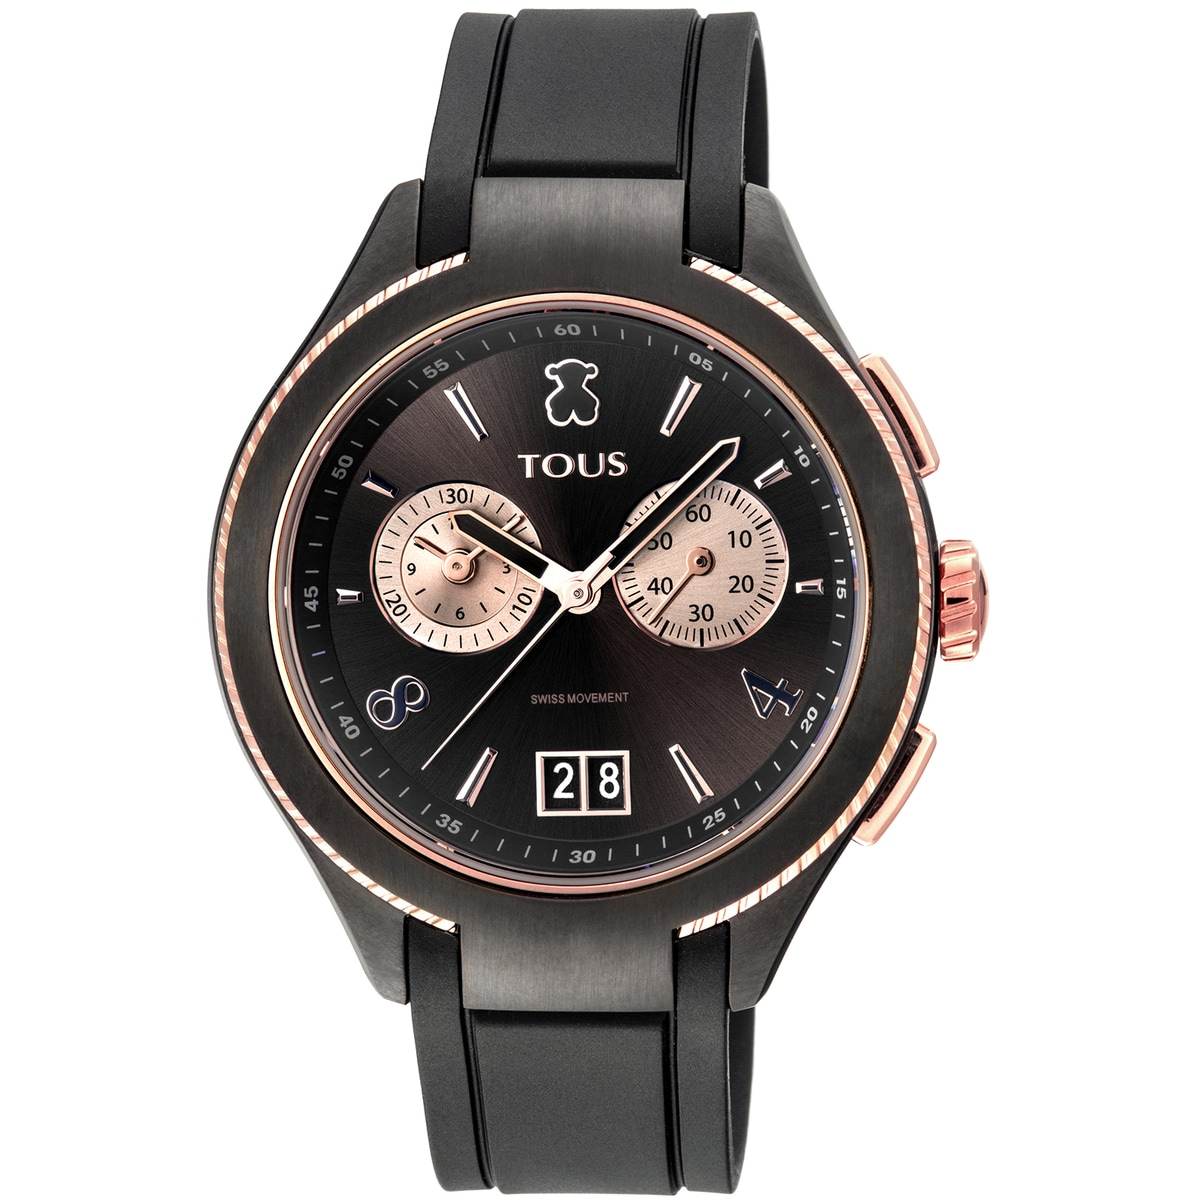 Two-tone Black/Rose IP ST Watch with black leather strap